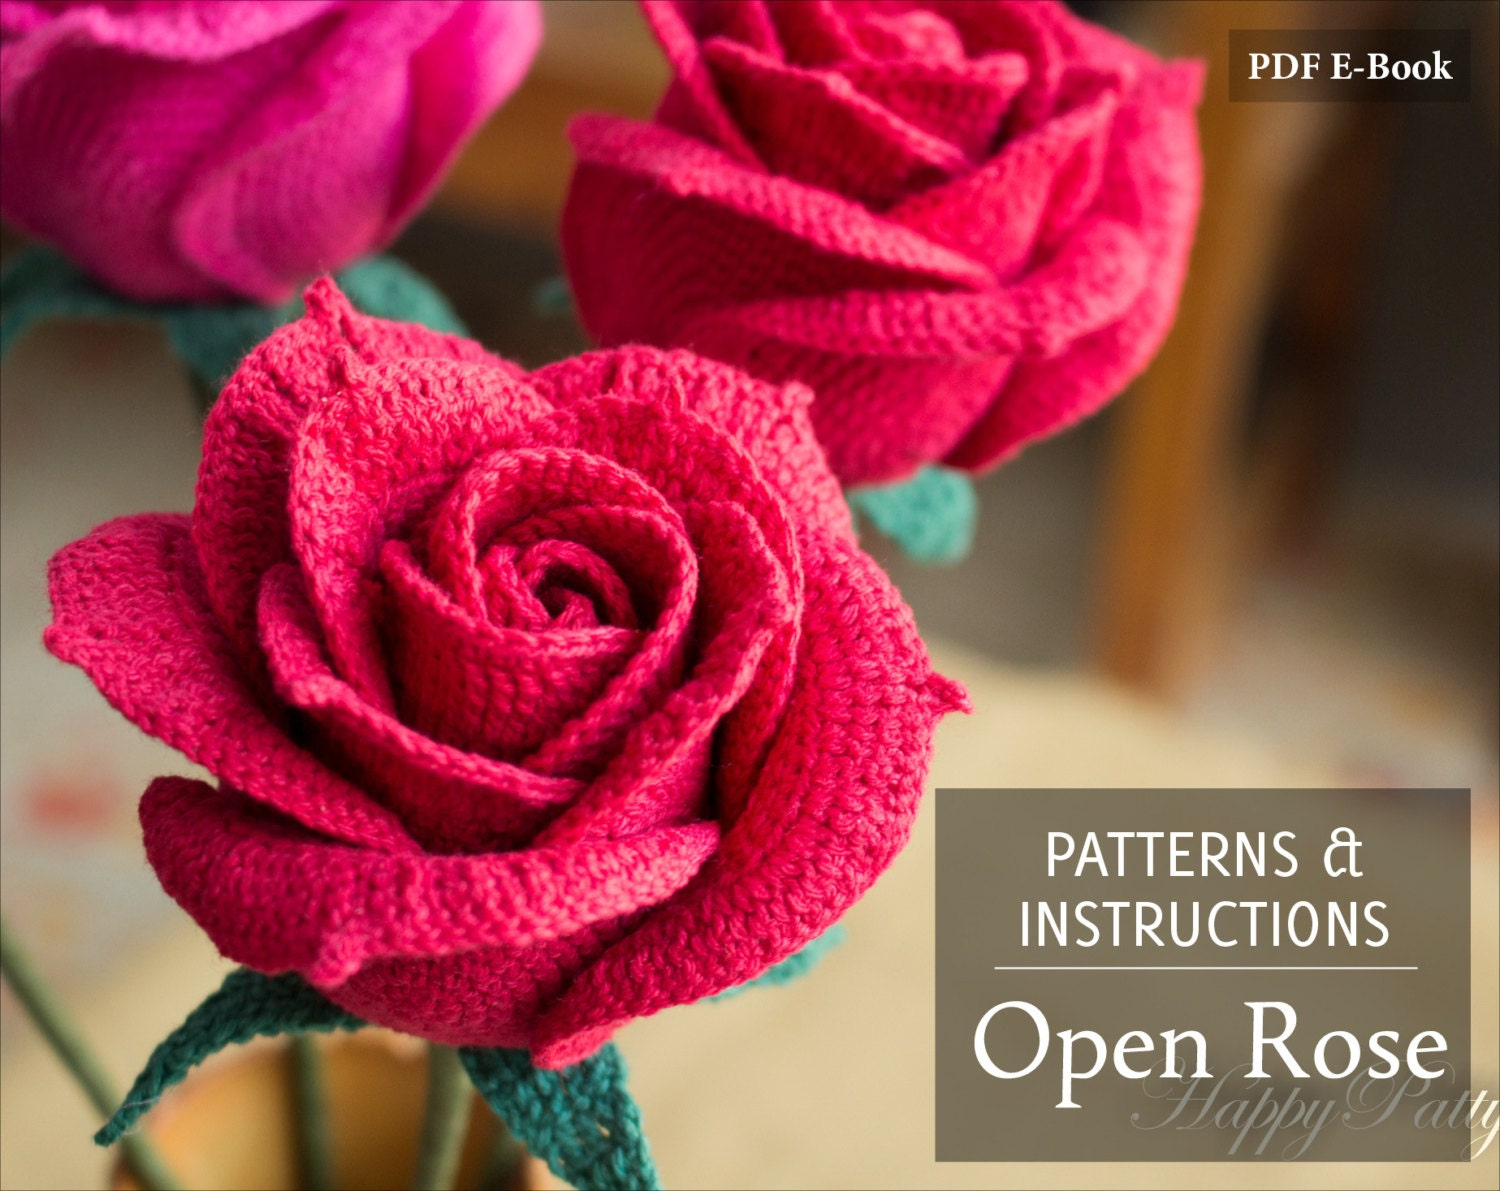 Crochet Stitches Rose : Crochet Rose Pattern Crochet Pattern for by HappyPattyCrochet